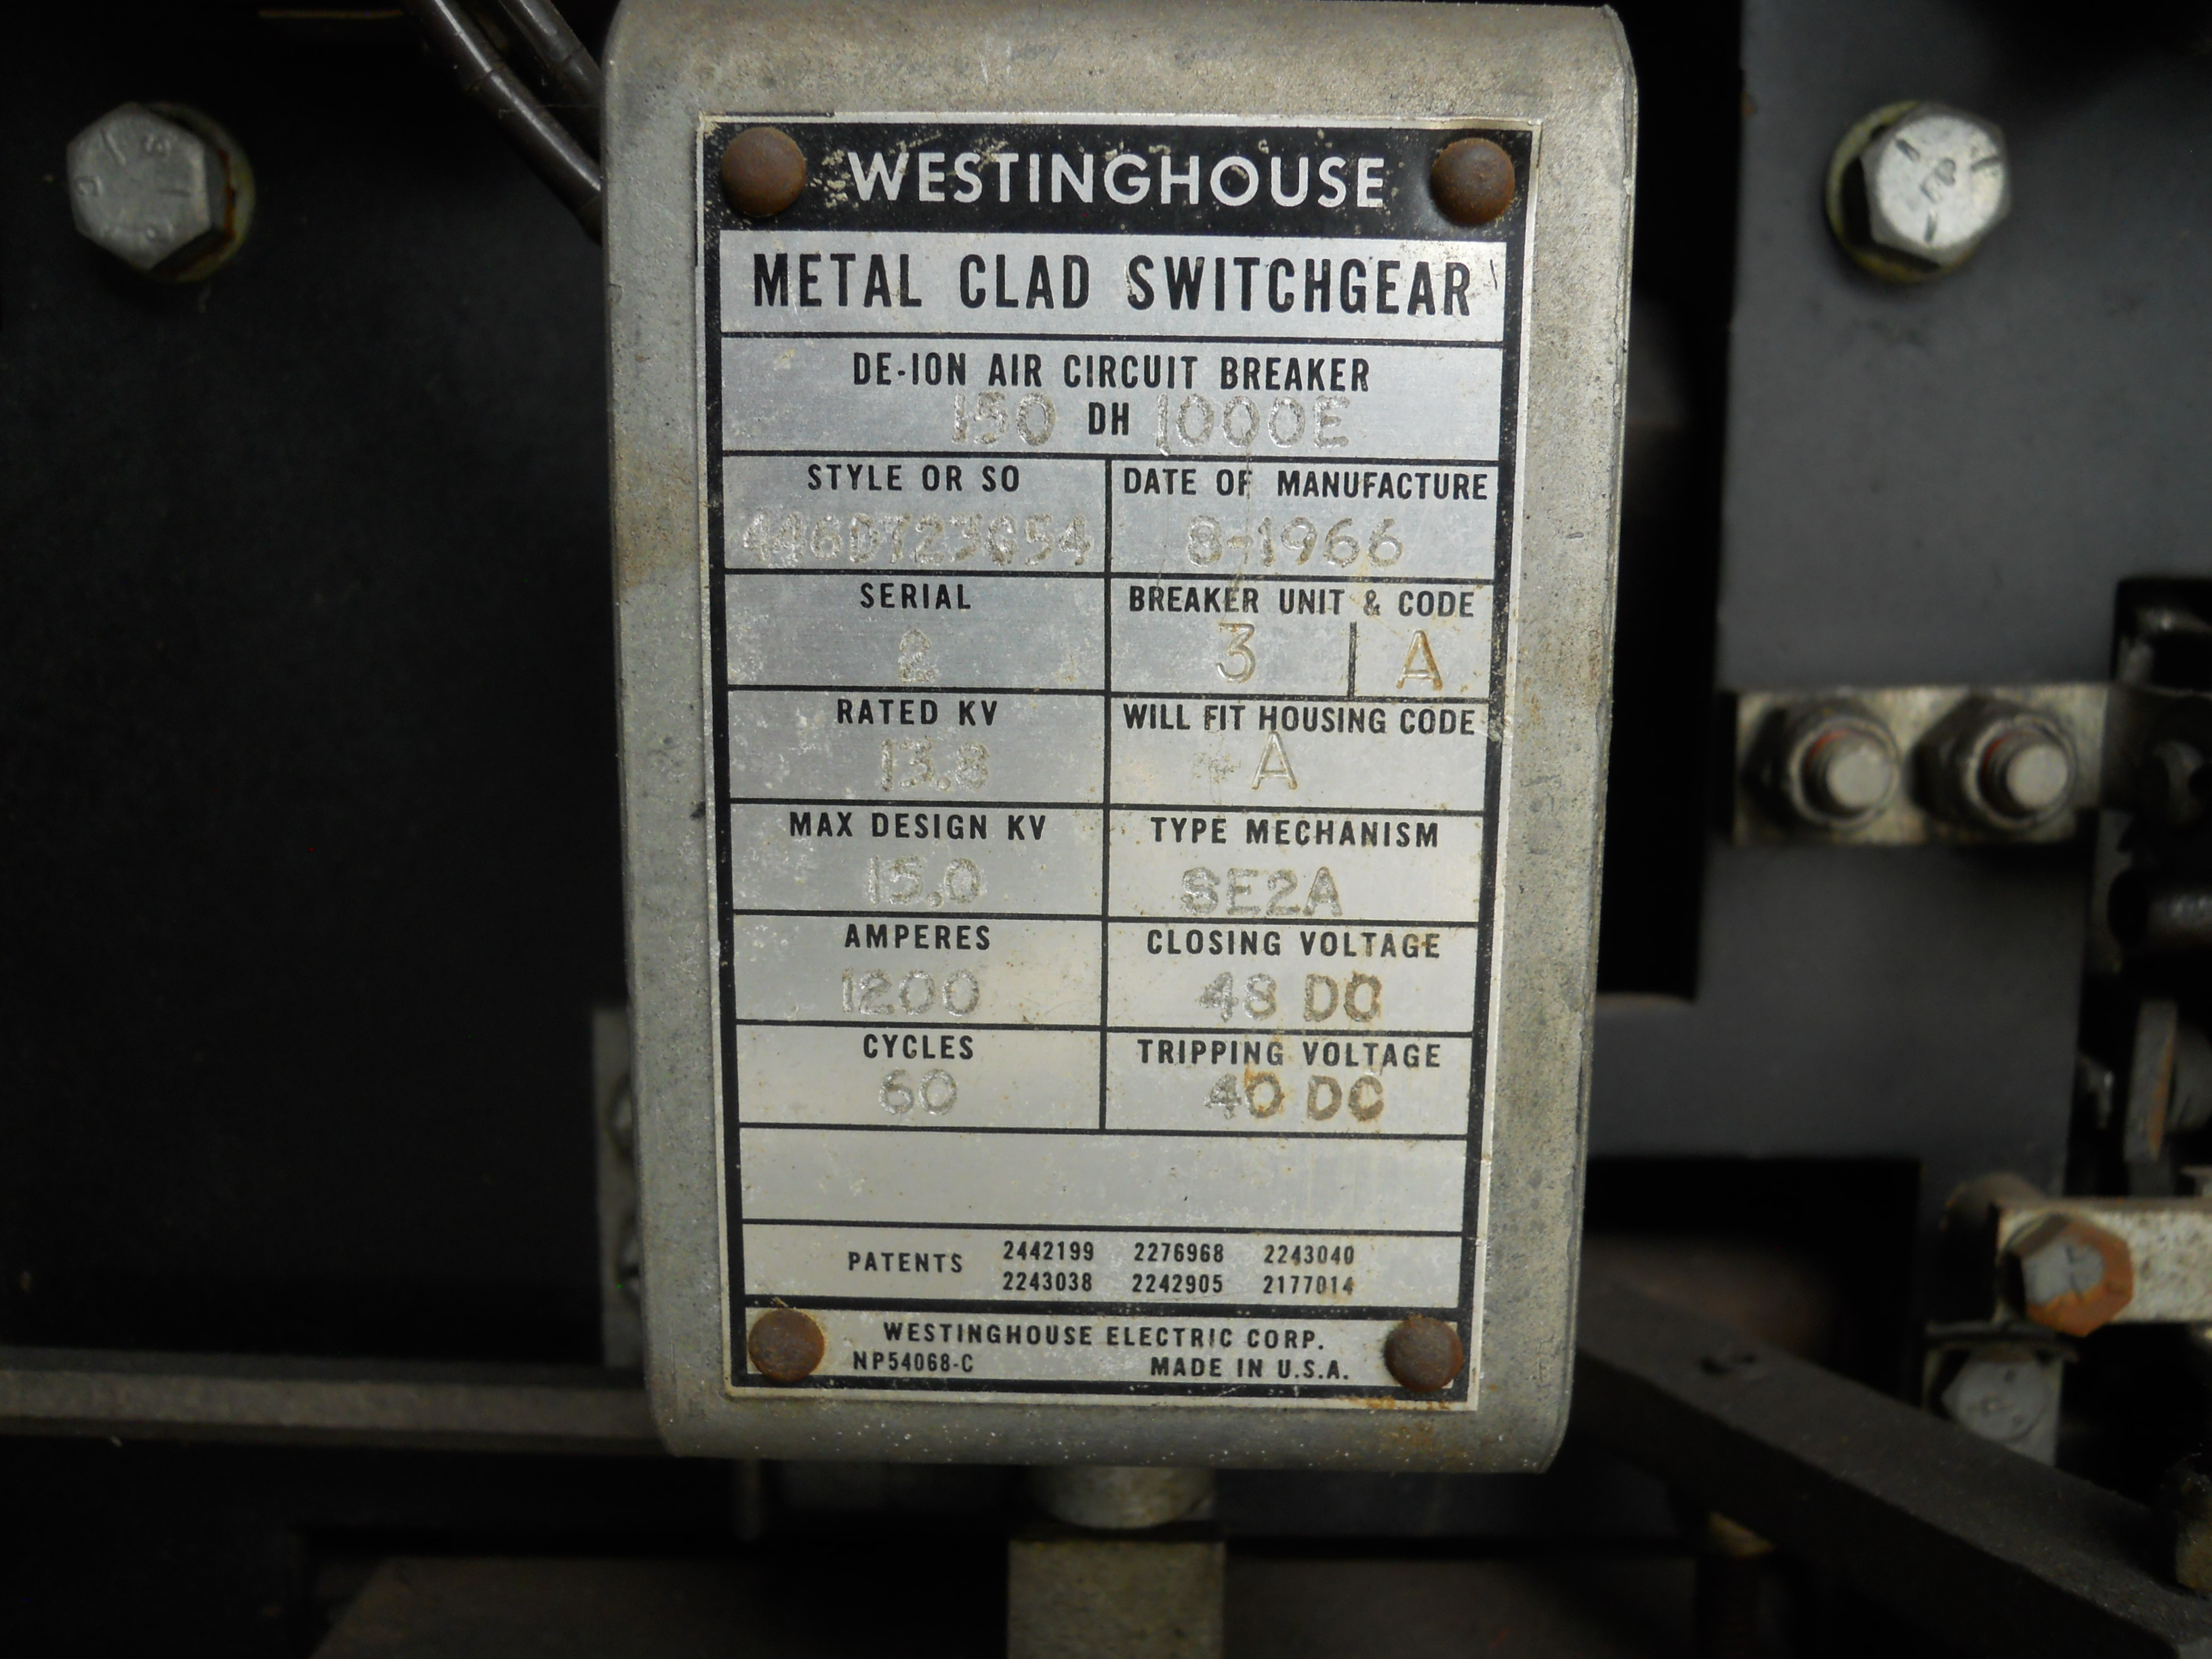 A housing code for a Westinghouse air breaker.